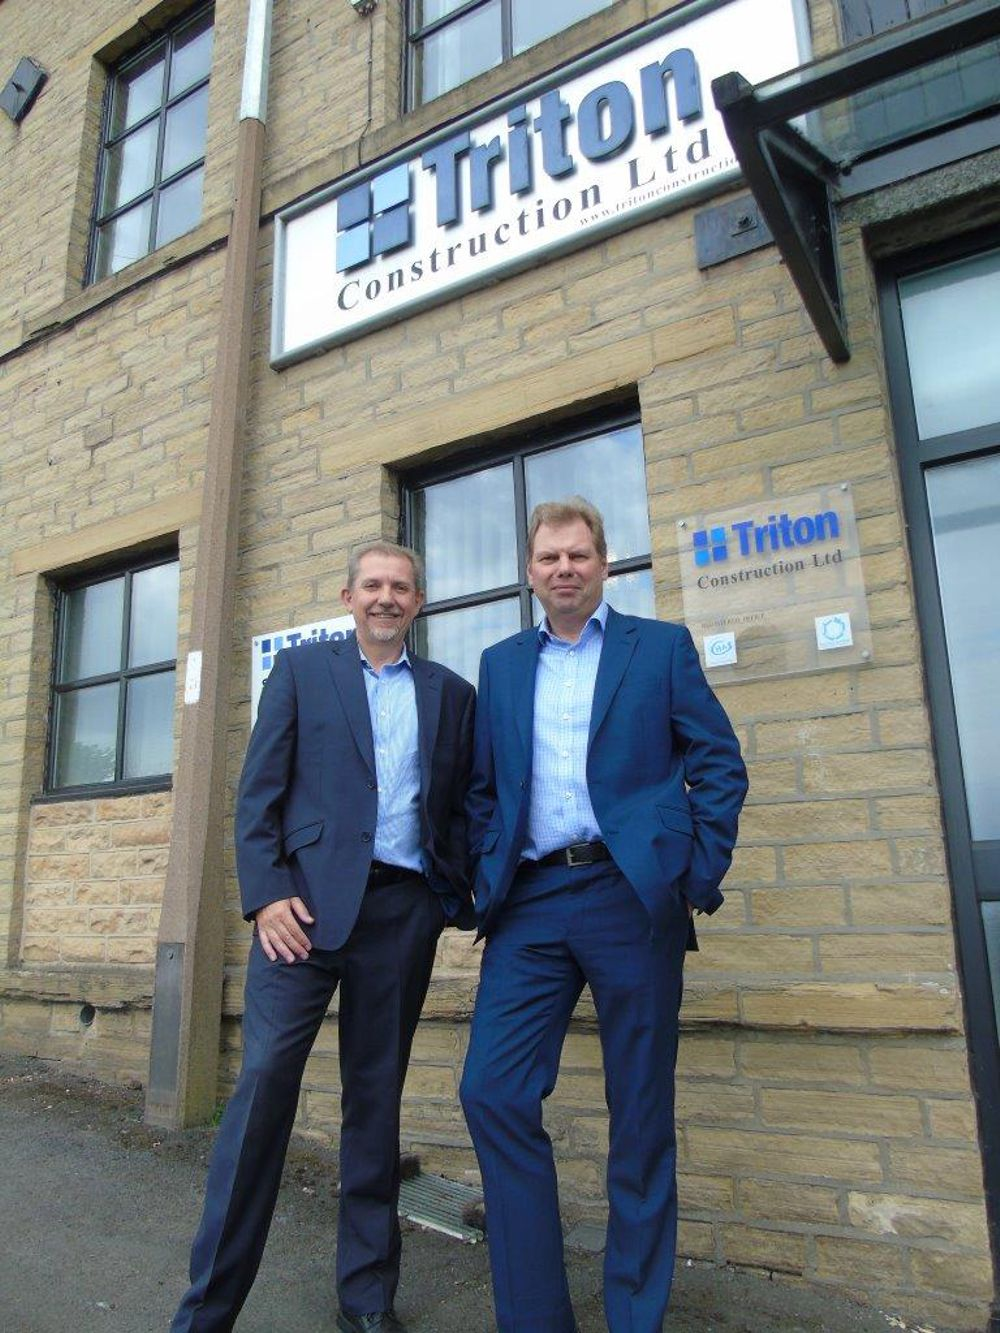 Triton Construction has announced that regional construction heavyweight Paul Clarkson has been appointed Managing Director to head up the business based in Yorkshire and the North West.